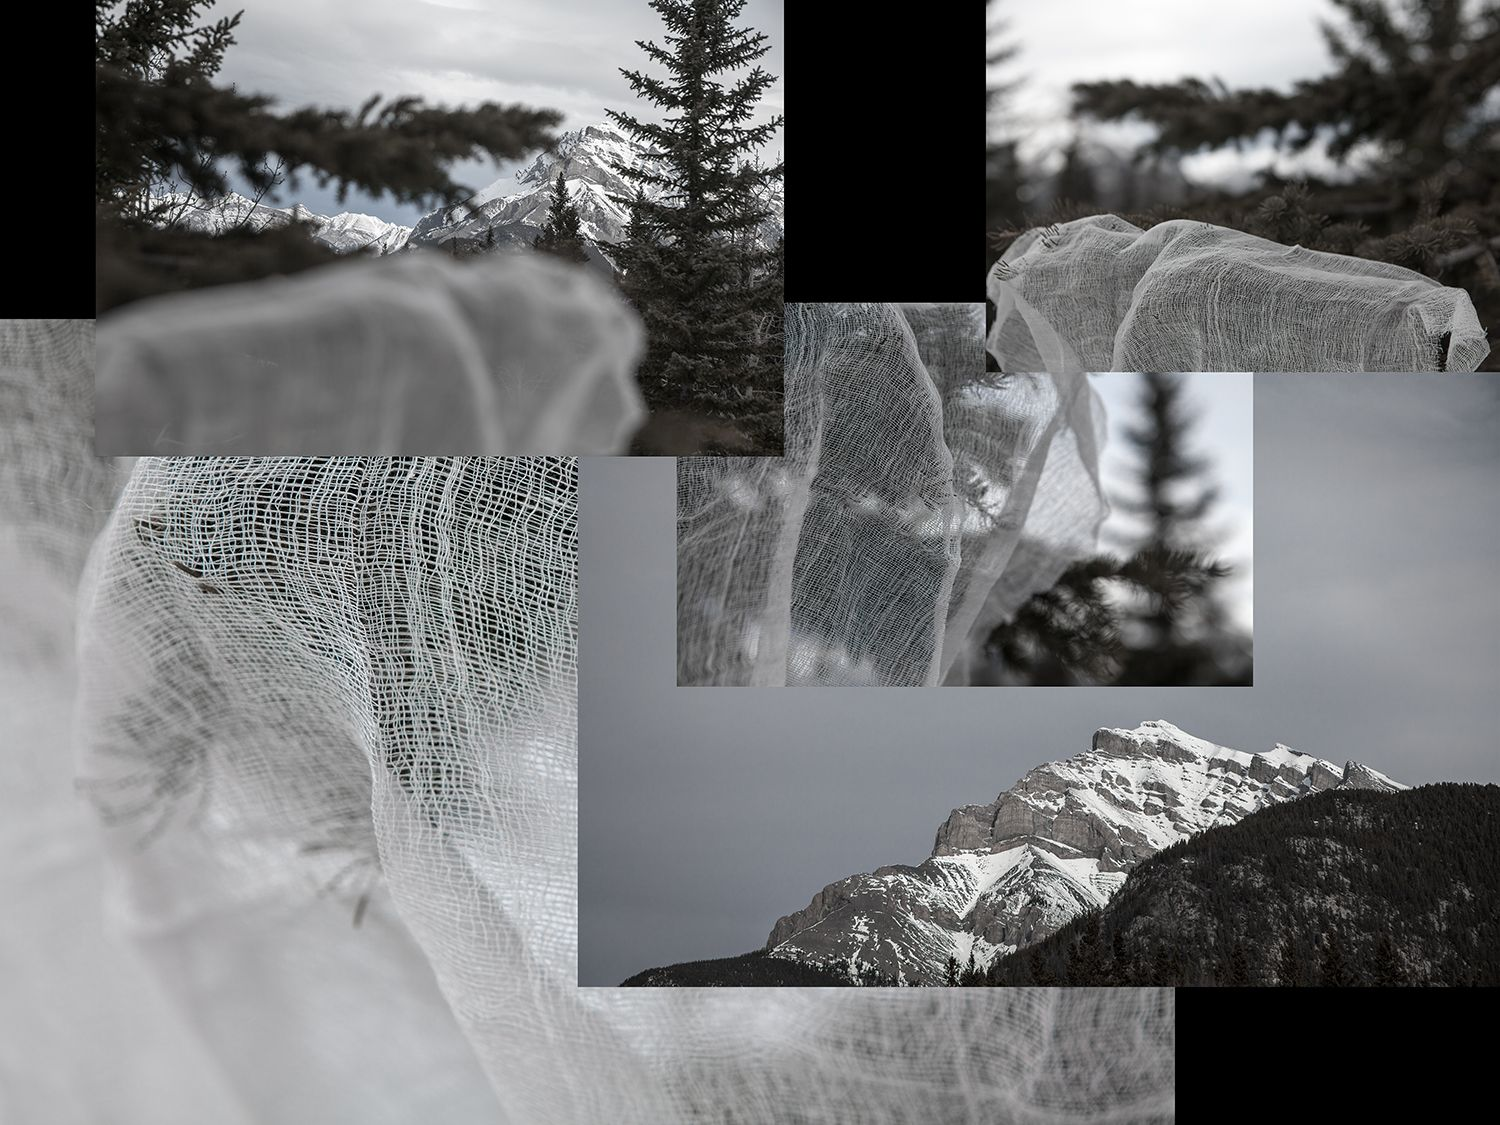 Dawn Roe Mountainfield Study (Cloth and Mountain), 2015 Archival Pigment Print 30h x 40w in, Edition of 3, Photography